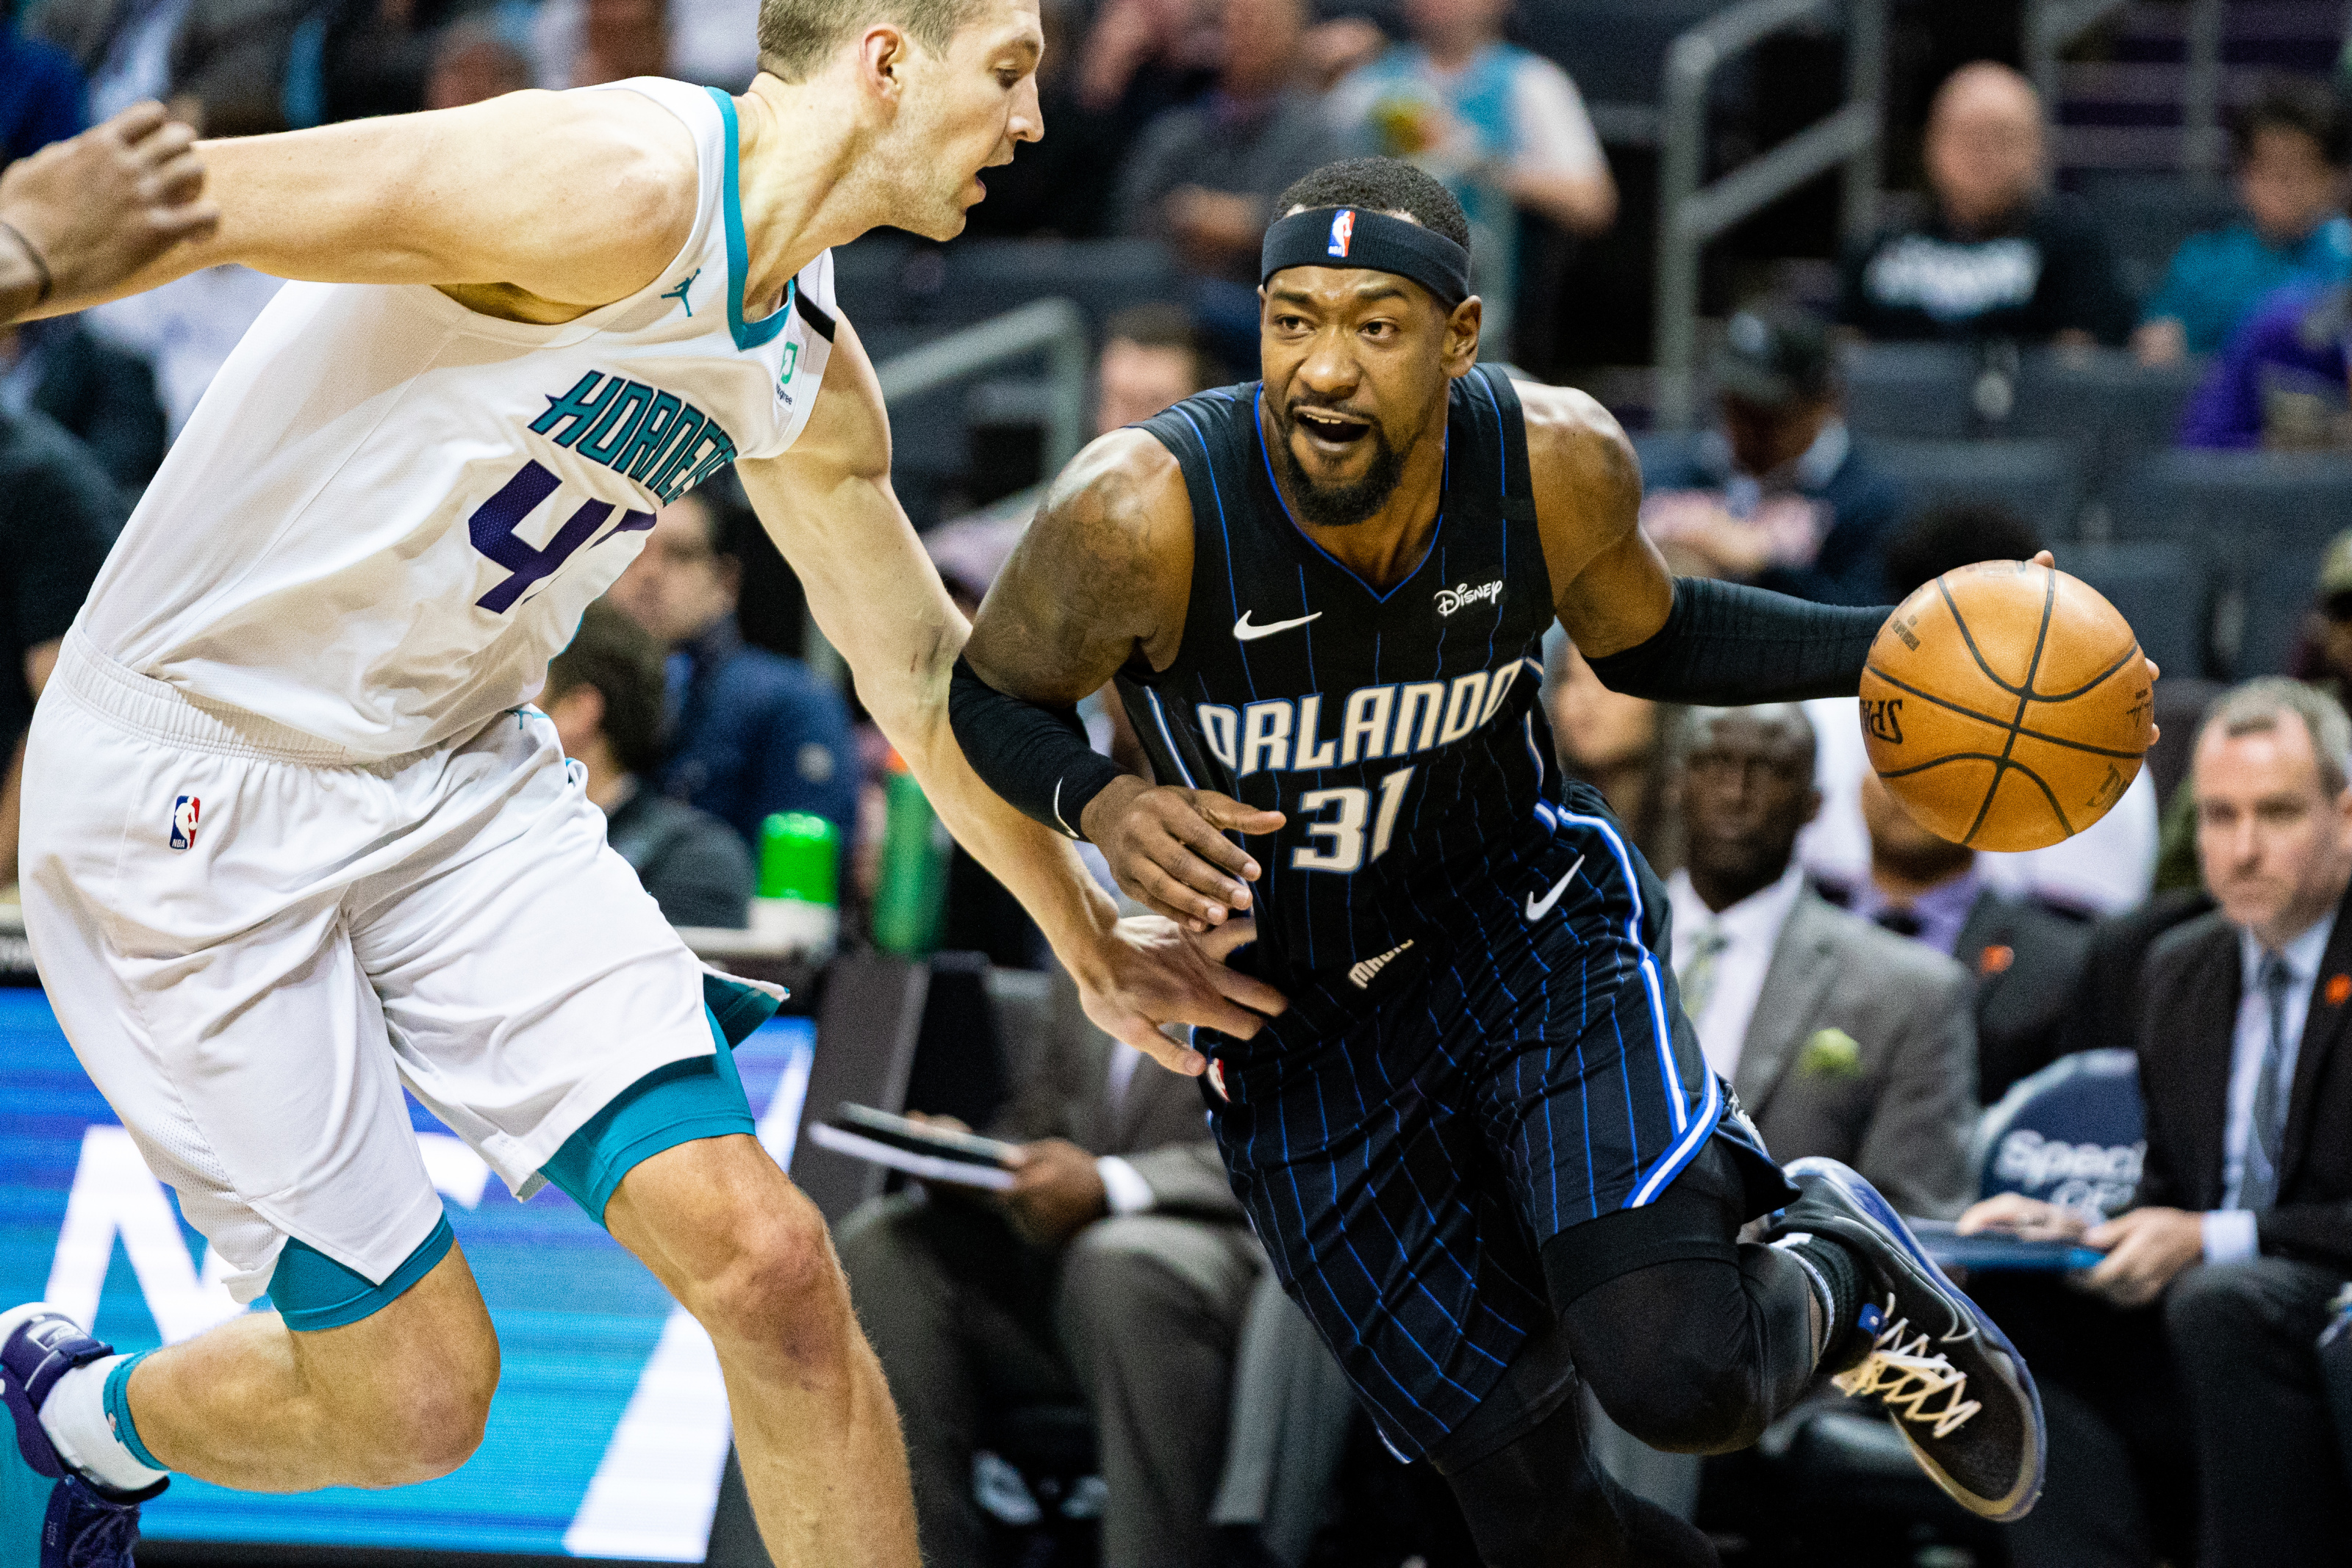 Orlando Magic Vs Charlotte Hornets Dec 19 2020 How To Watch Odds And Prediction